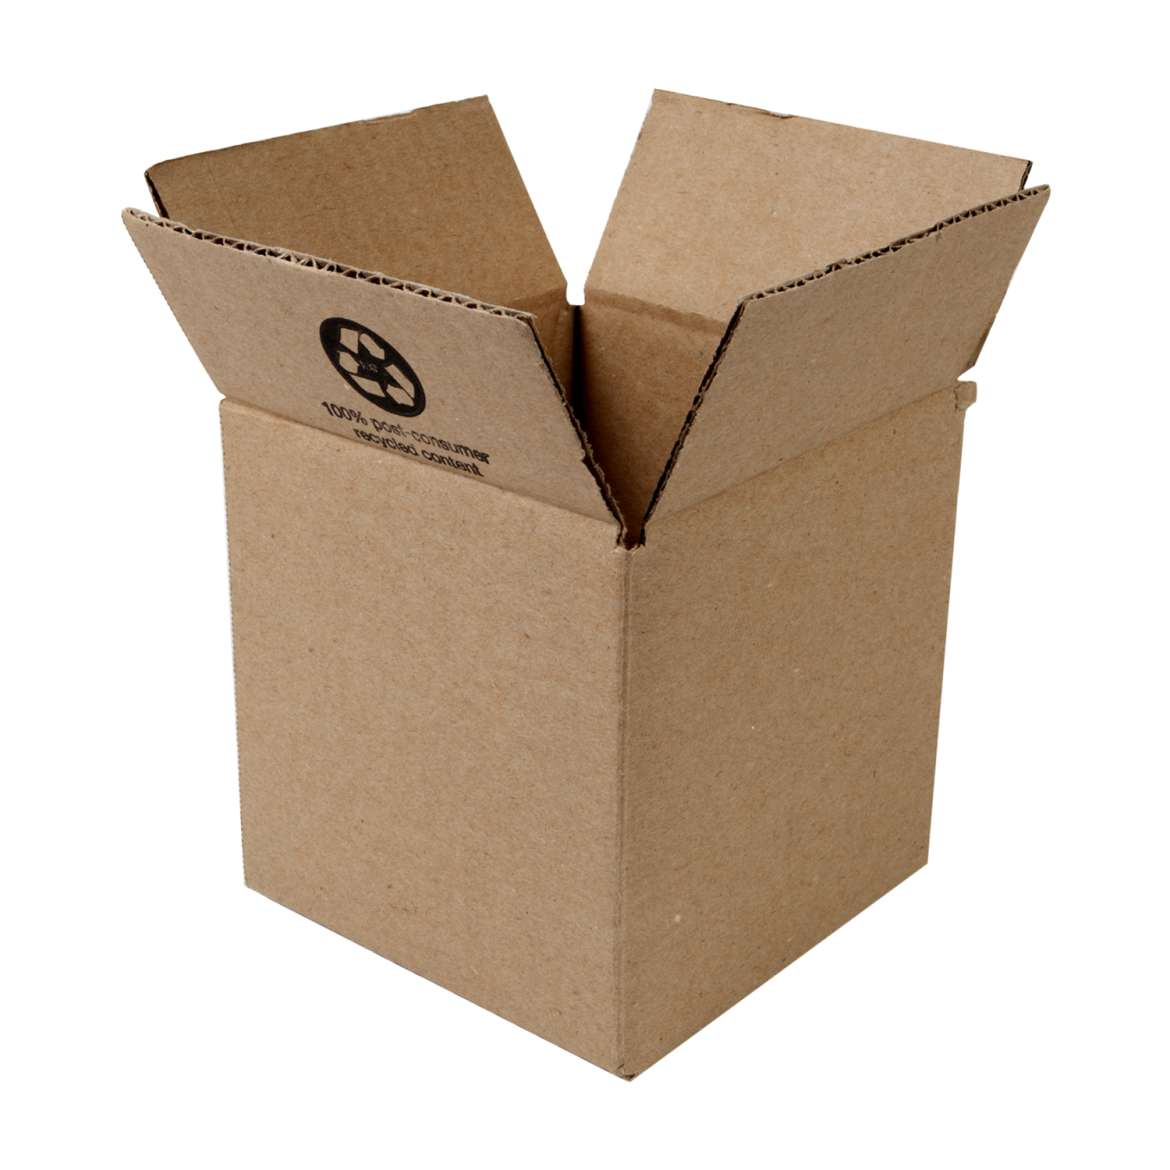 Duck Brand Kraft Box - Brown, 6 in. x 6 in. x 6 in.